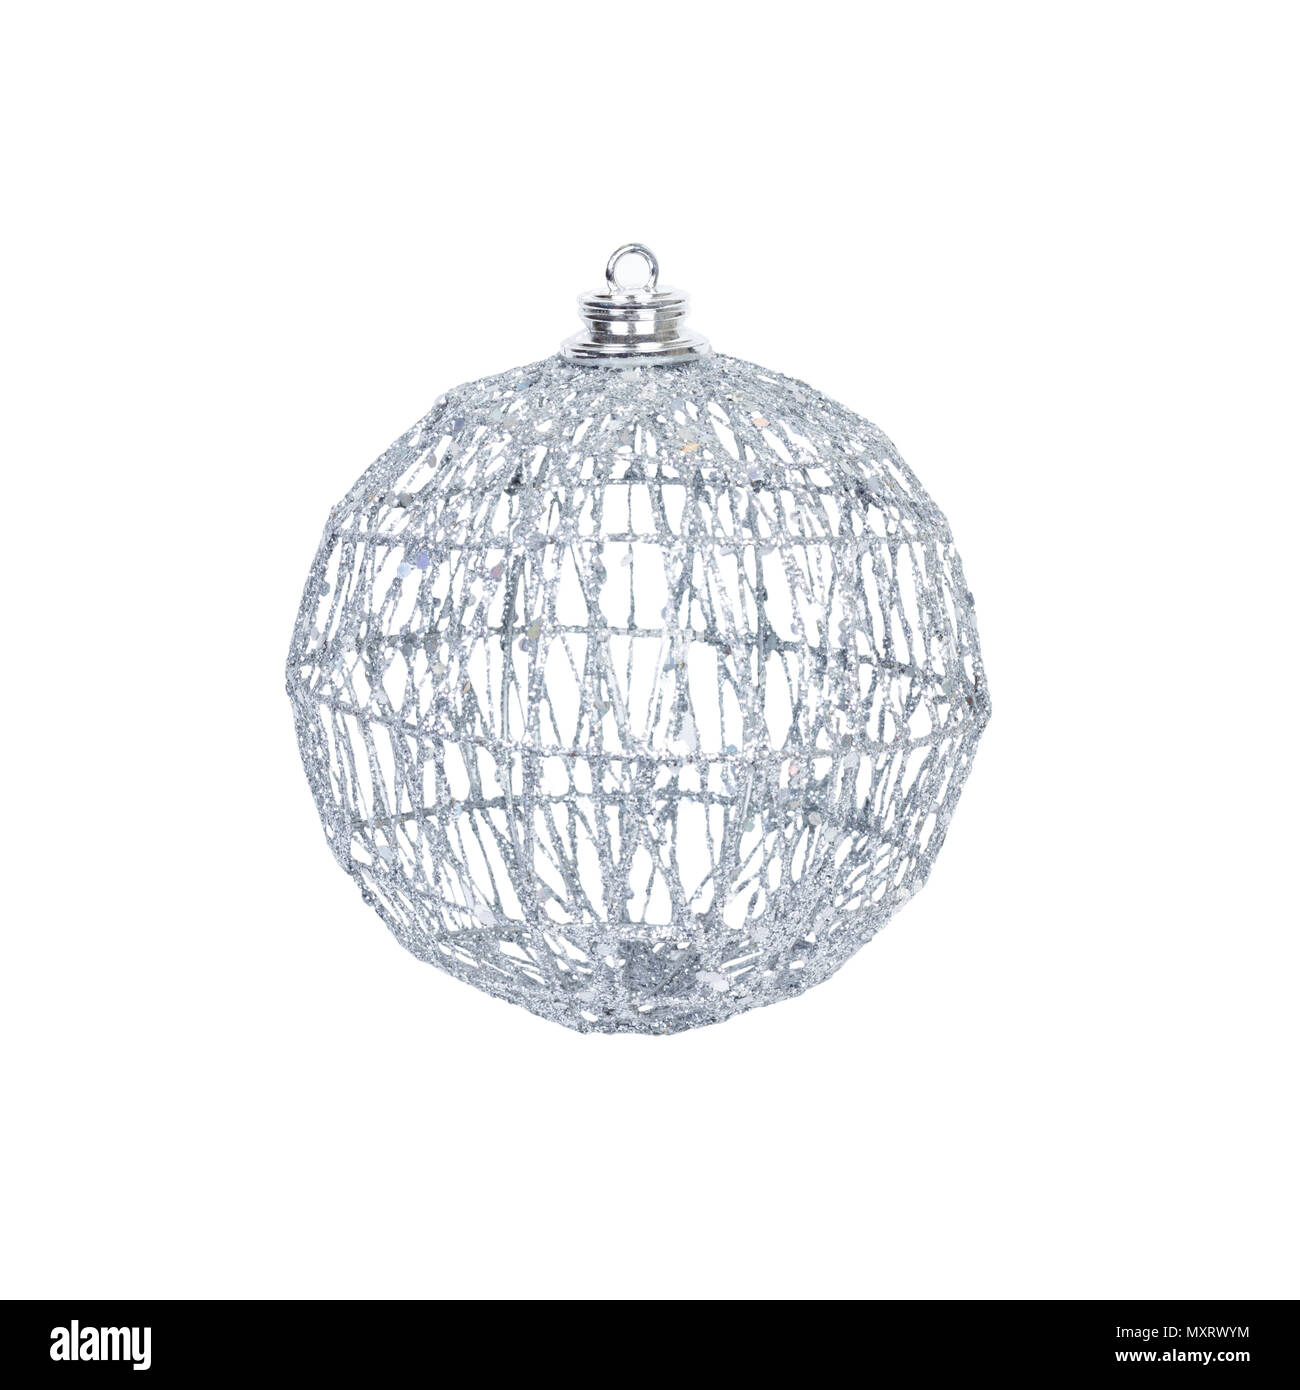 christmas toy for the christmas tree and new year beautiful silver sparkly ball isolated on the white background